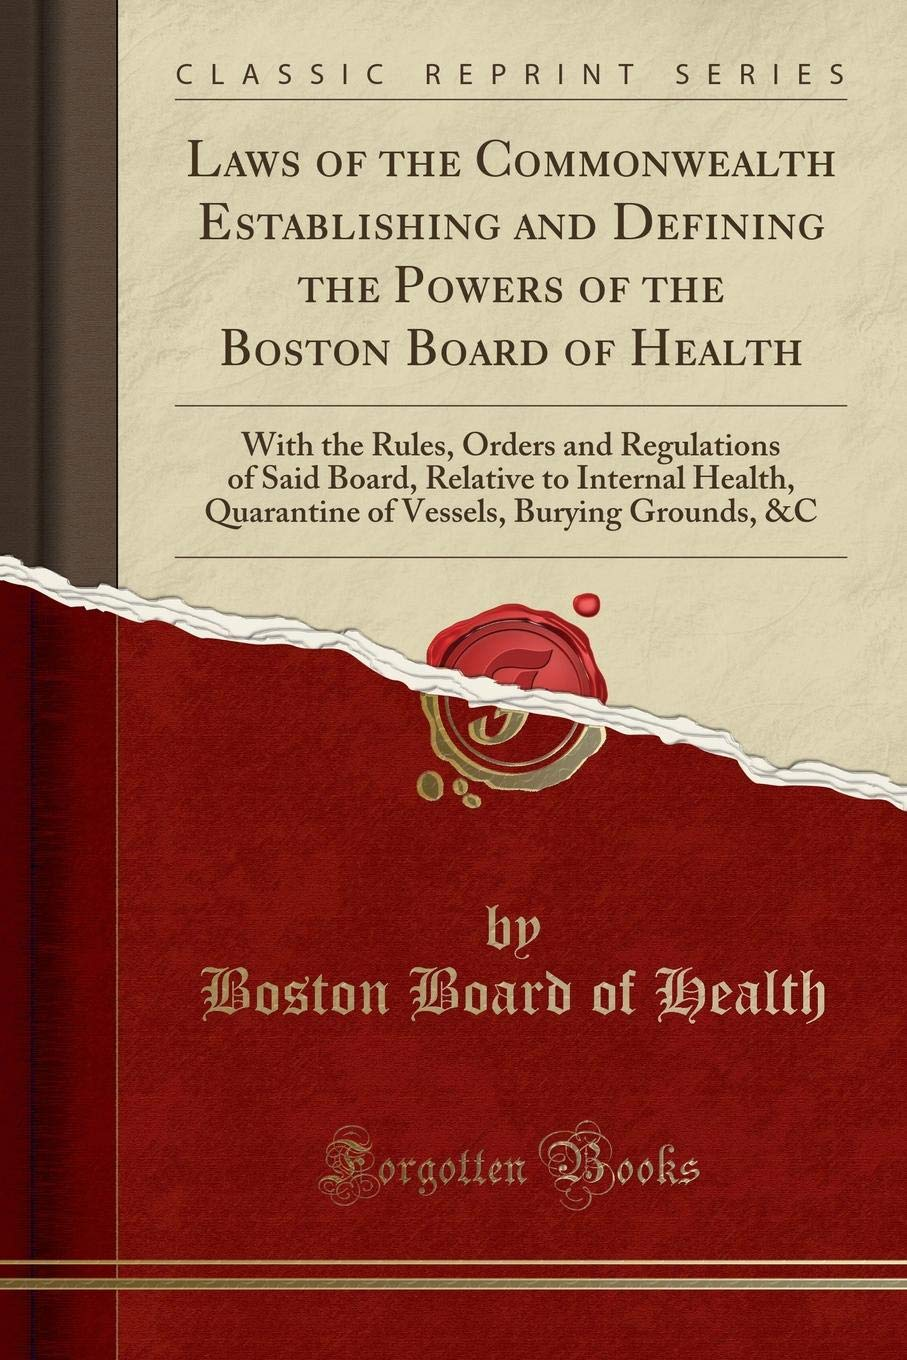 Download Laws of the Commonwealth Establishing and Defining the Powers of the Boston Board of Health: With the Rules, Orders and Regulations of Said Board, ... Burying Grounds, &C (Classic Reprint) ebook